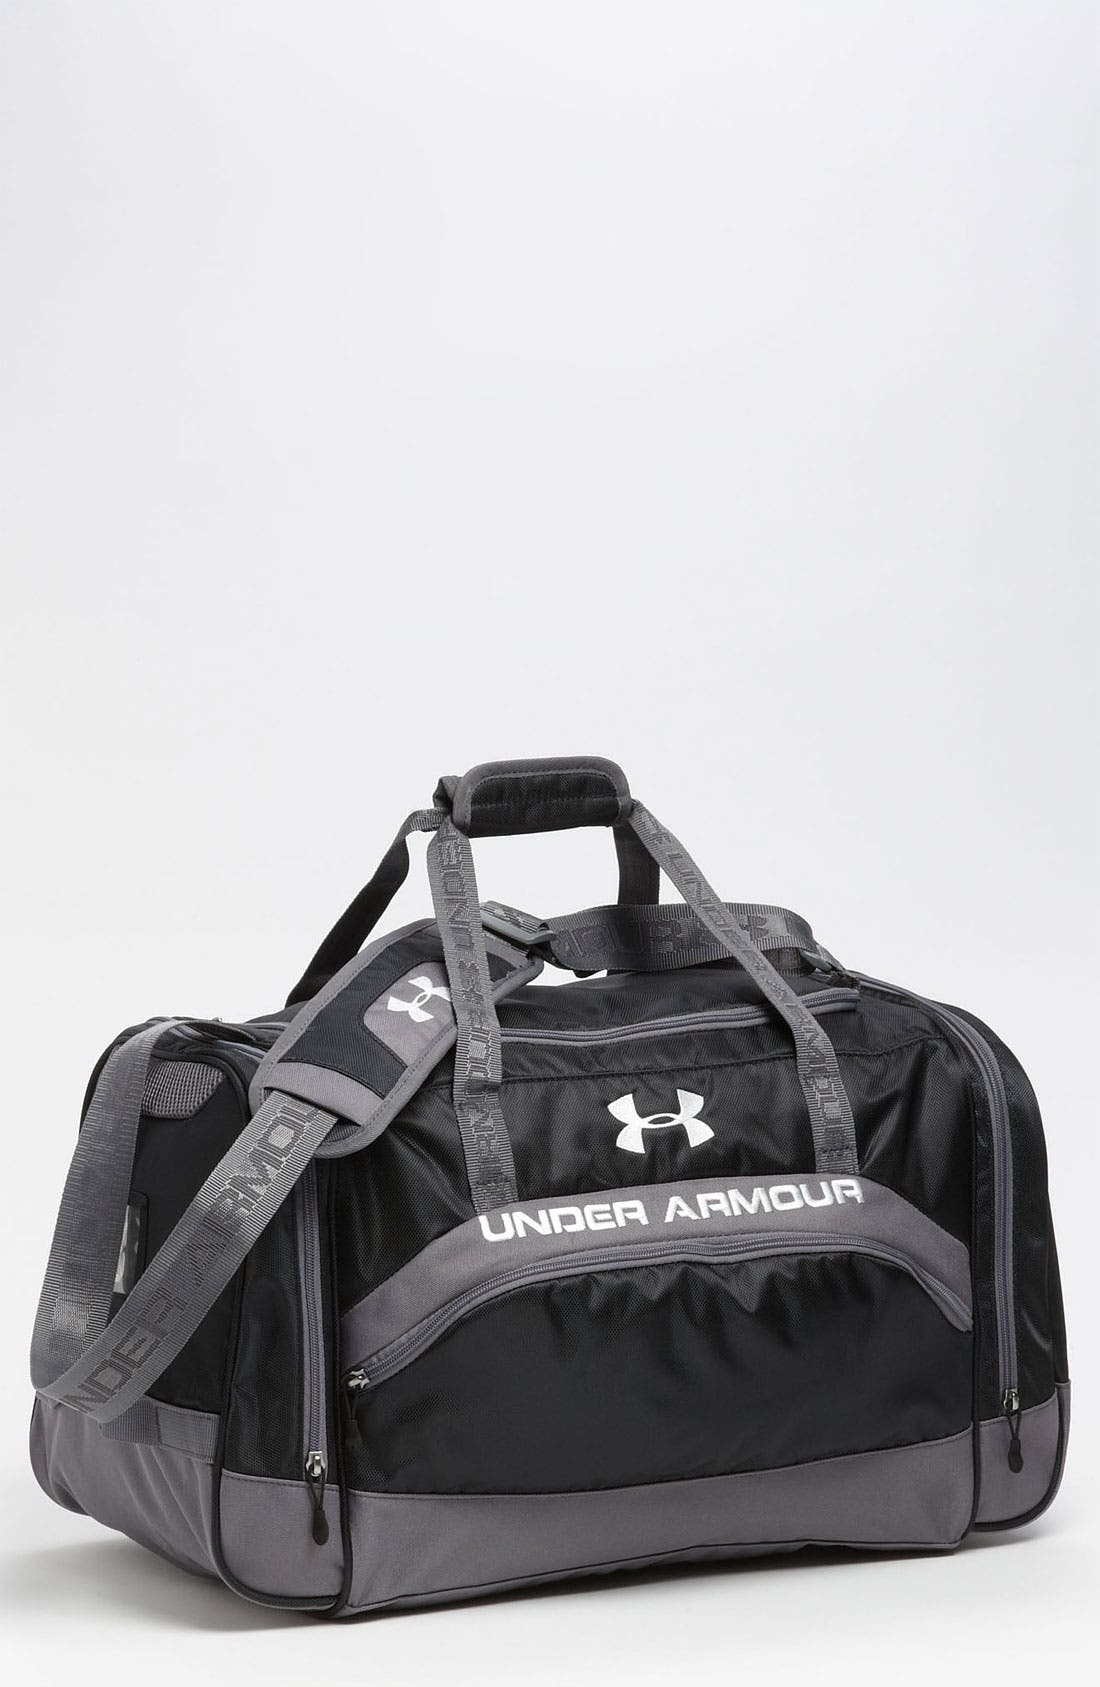 Alternate Image 1 Selected - Under Armour 'Victory Stream' Duffel Bag (Kids)